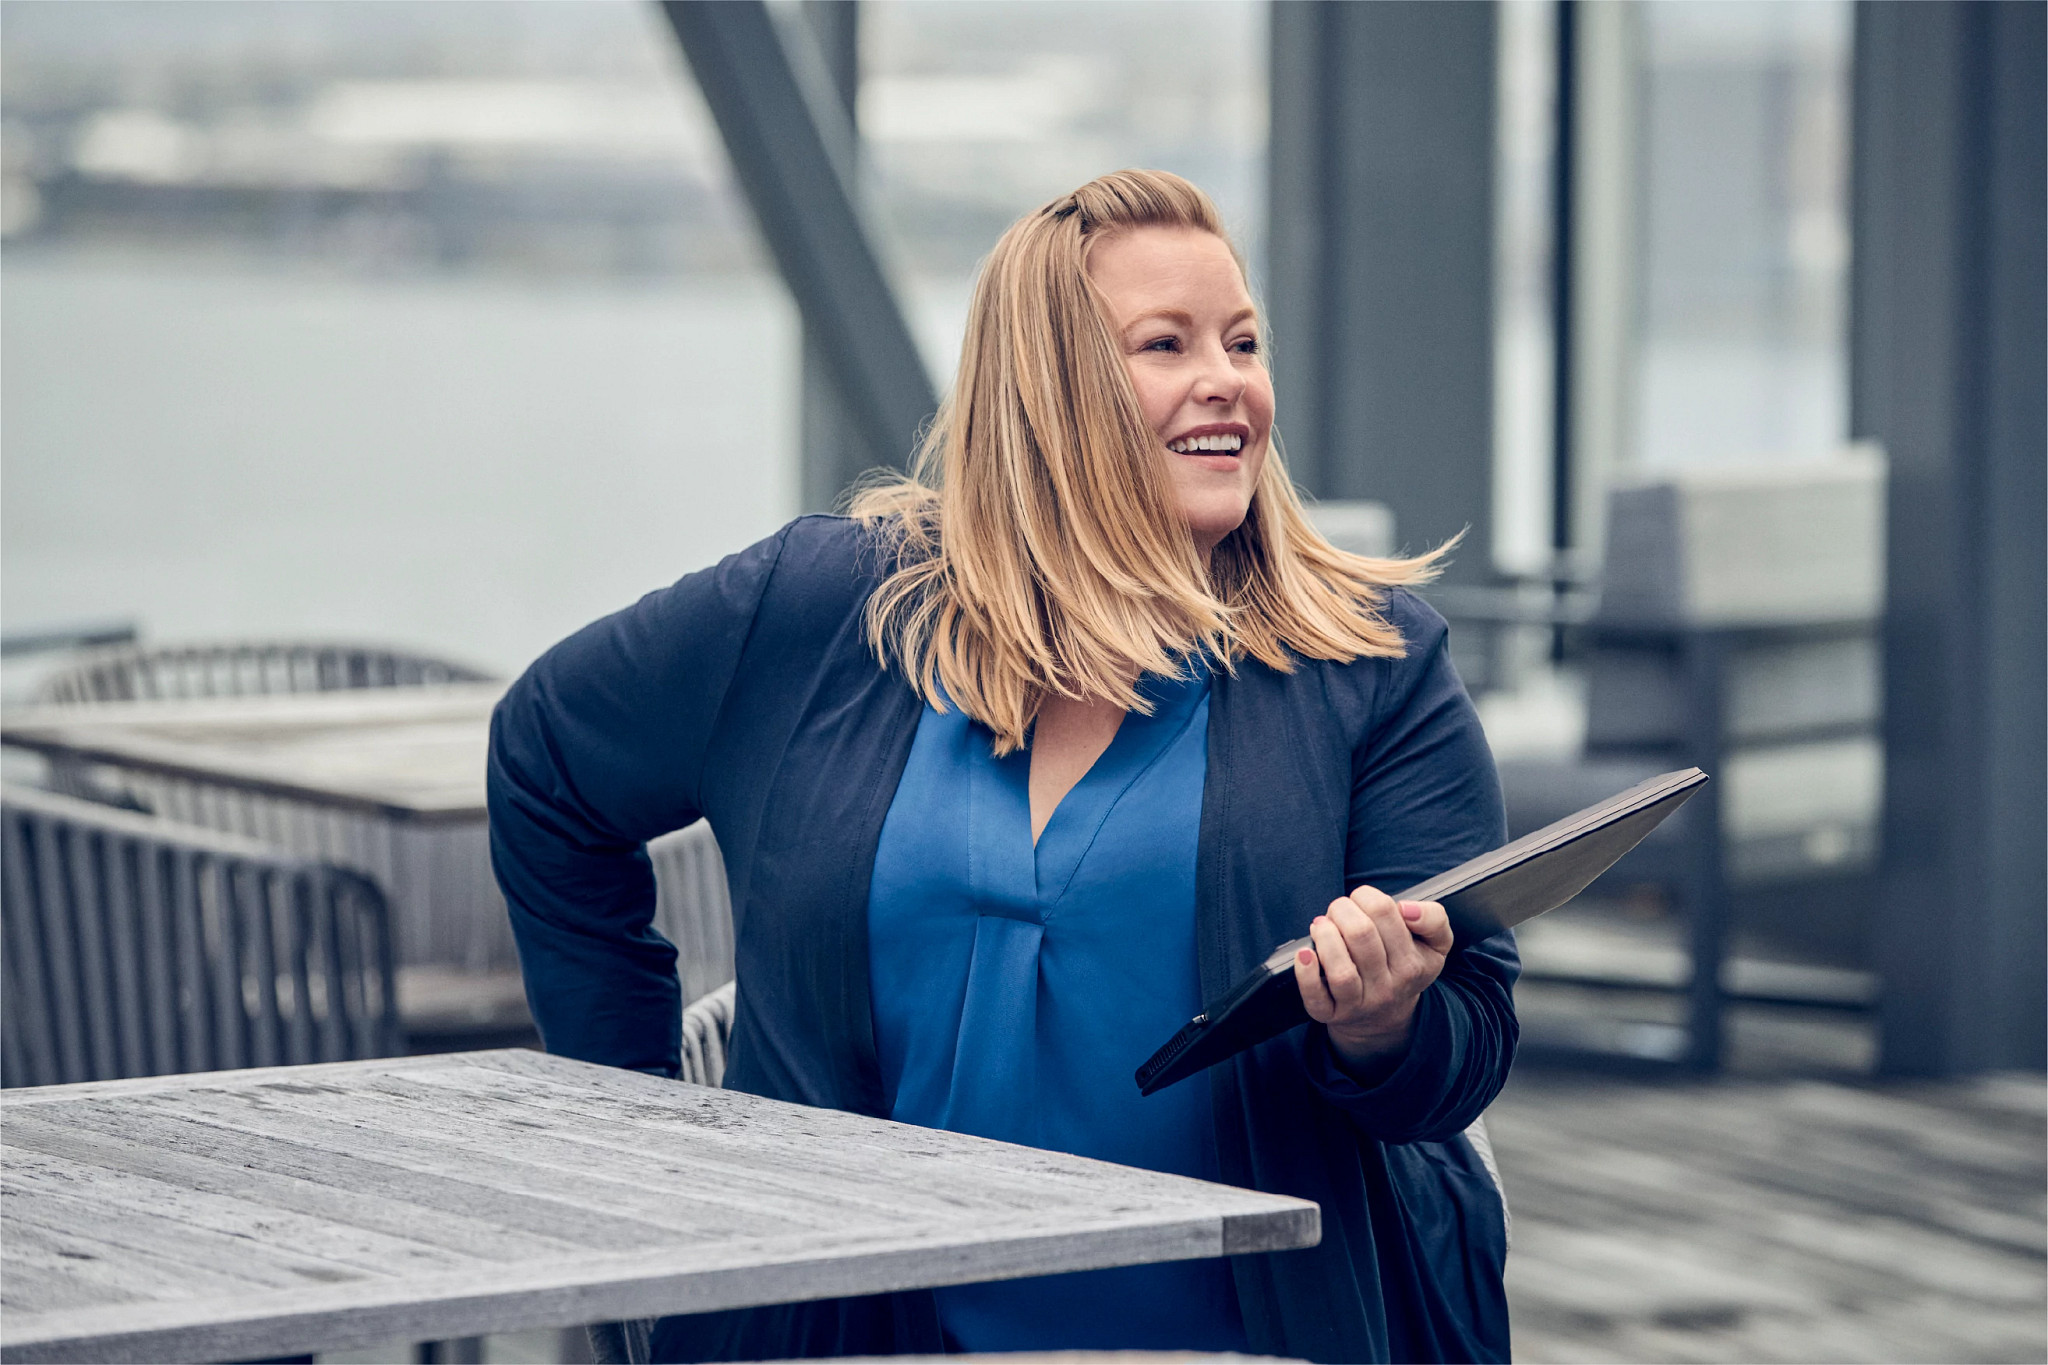 Brandy B., Senior Specialist, Digital Success, works outside with a tablet to deliver Cengage's modern digital learning experience.